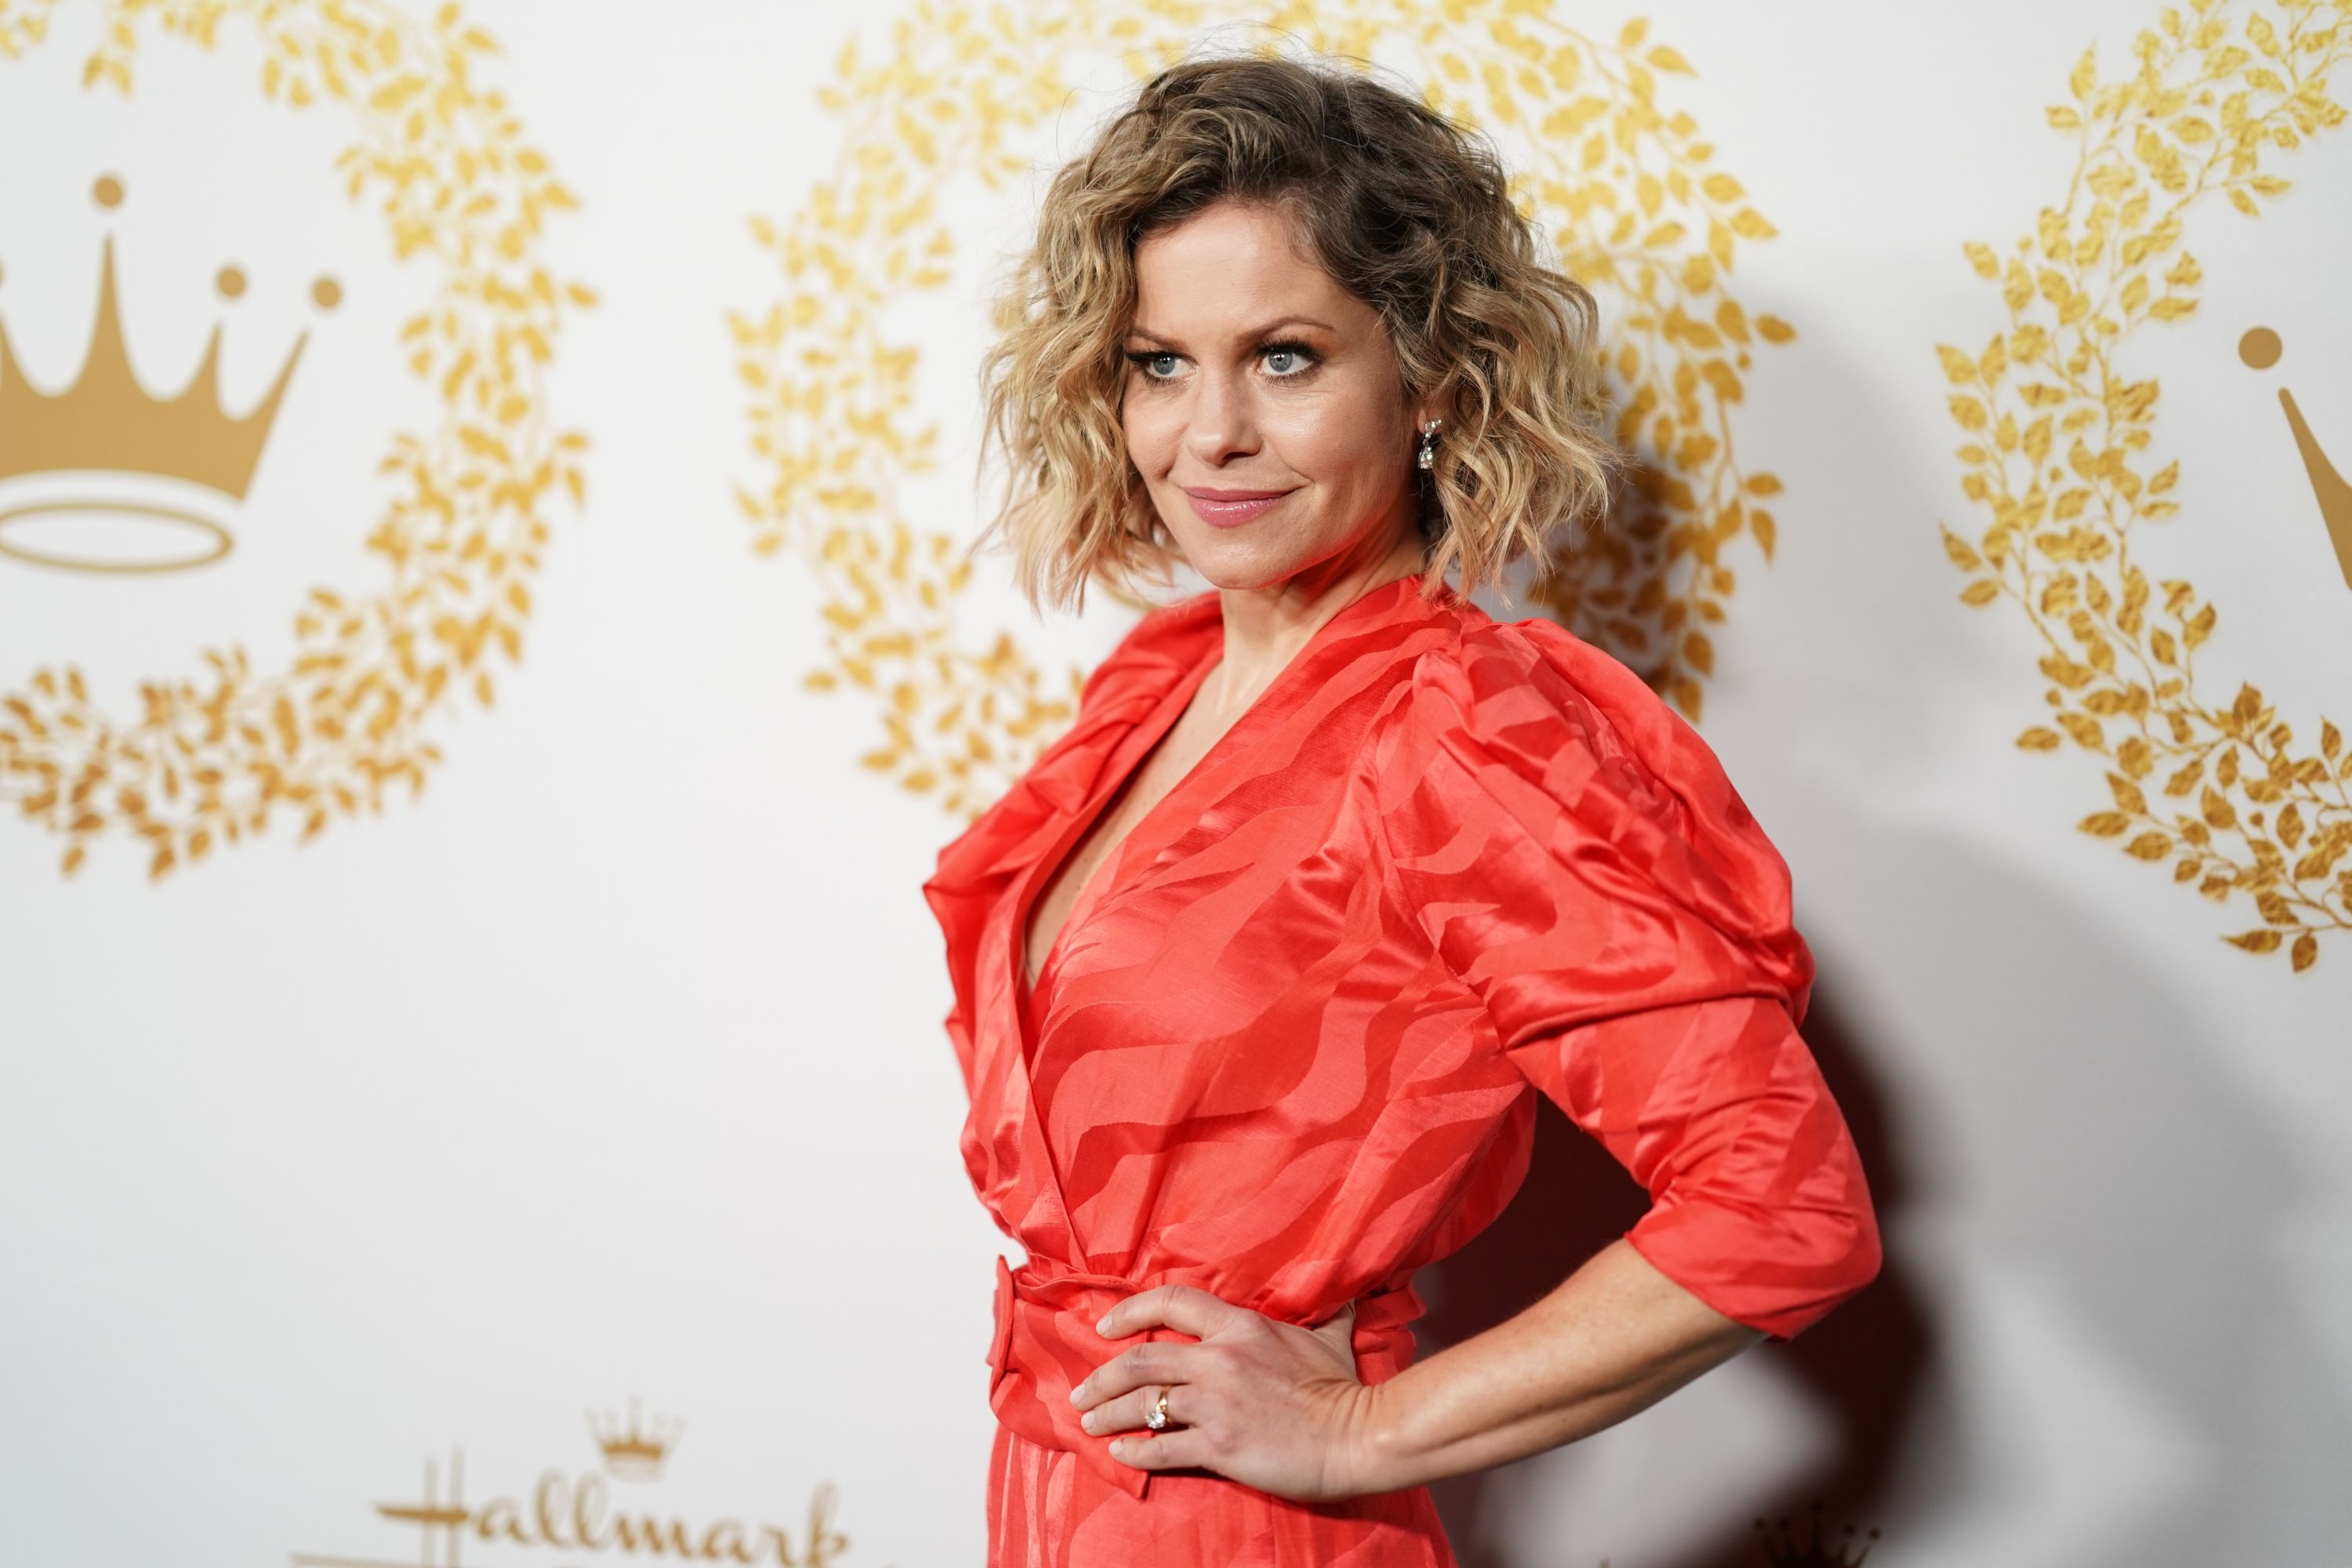 Candace Cameron Bure at the Hallmark Channel and Hallmark Movies and Mysteries 2019 Winter TCA Tour in Pasadena, California | Photo: Getty Images